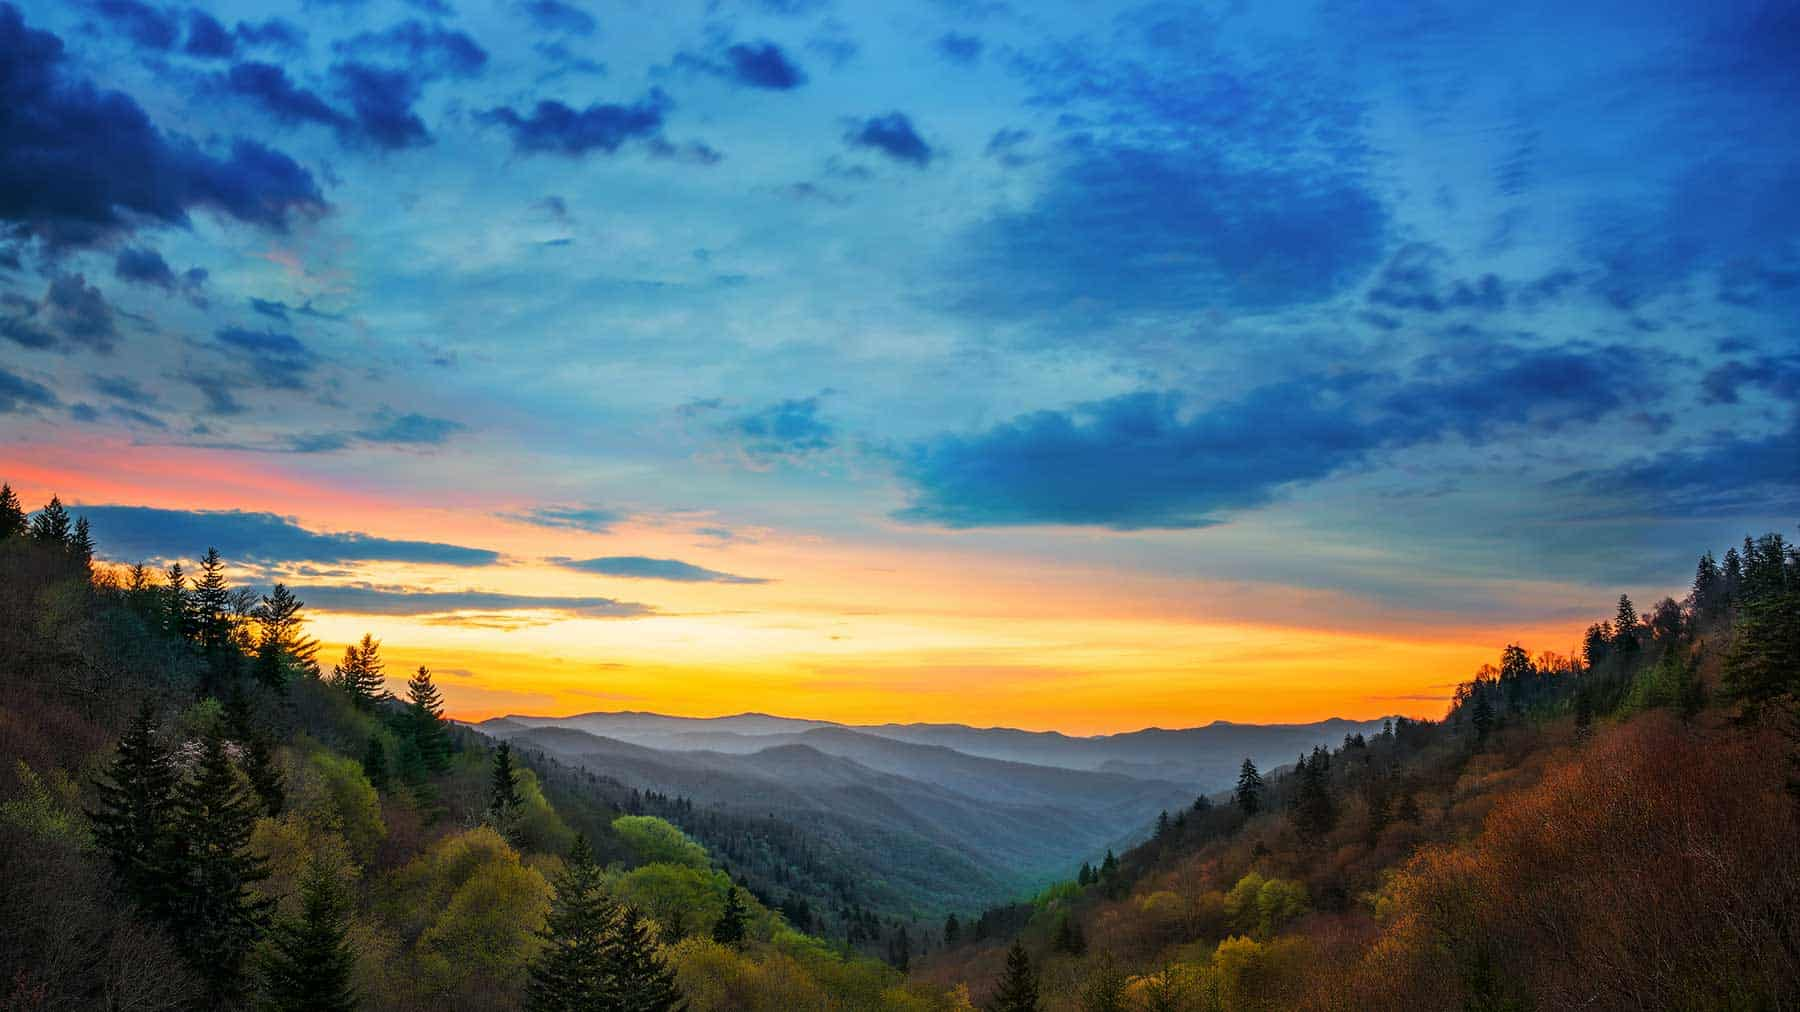 Sunrise over the Smoky Mountains